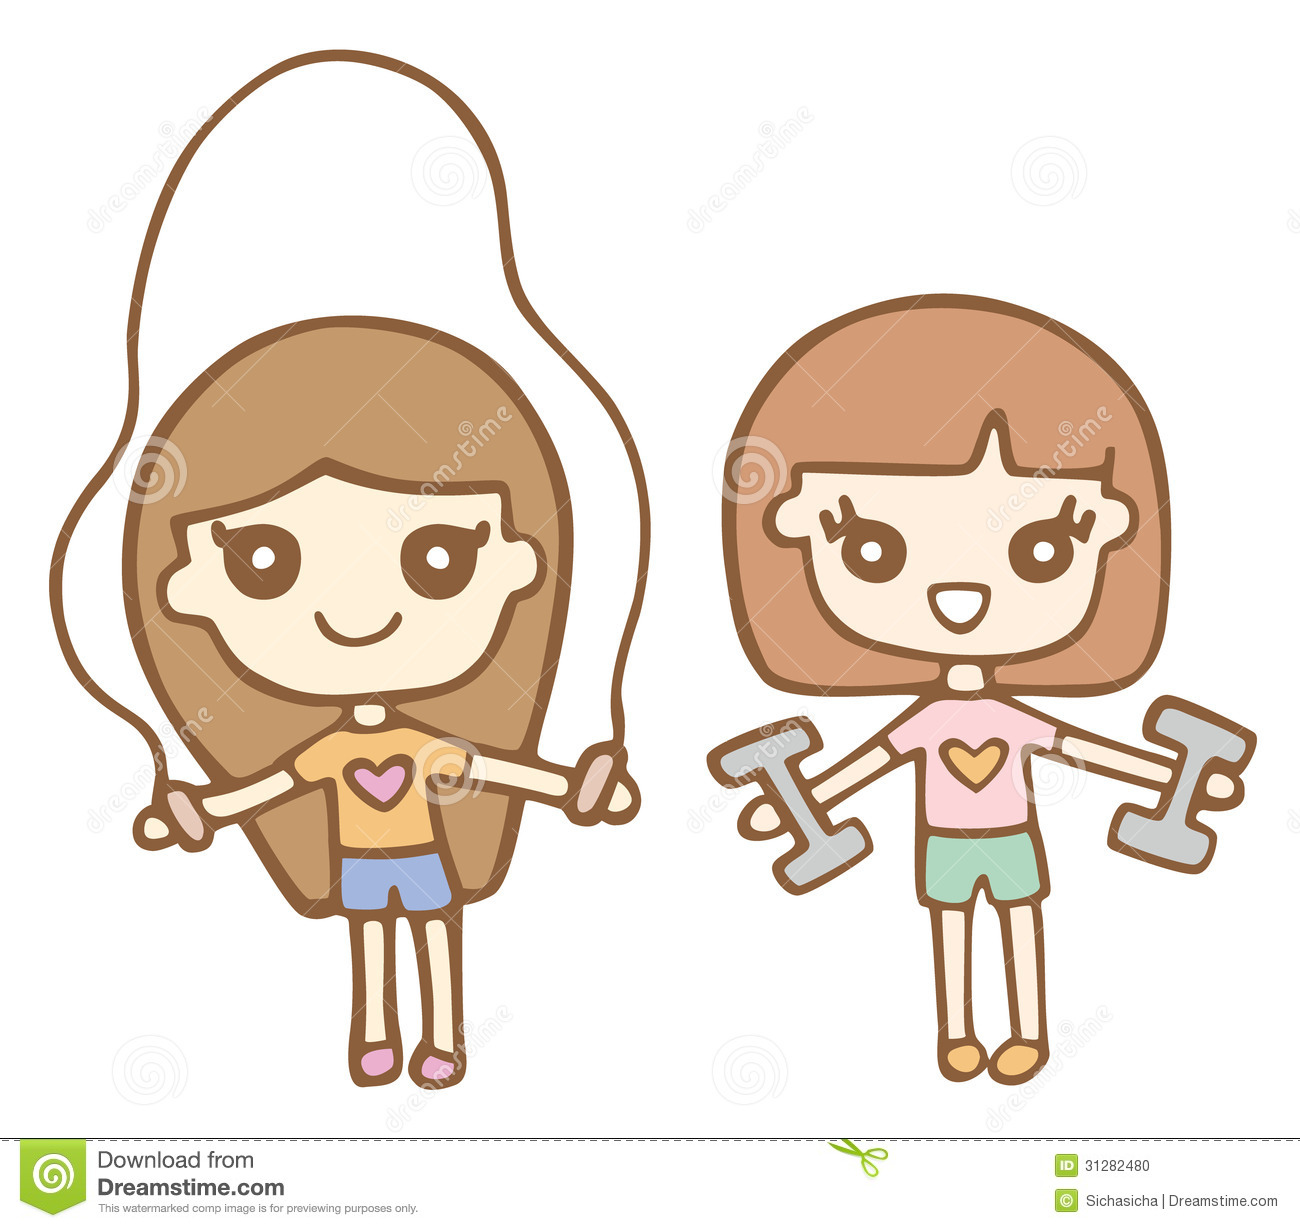 Stock Photo Cartoon Cute Girls Exercising Using Dumbells Vector Illustration Image31282480 on christmas tree themes